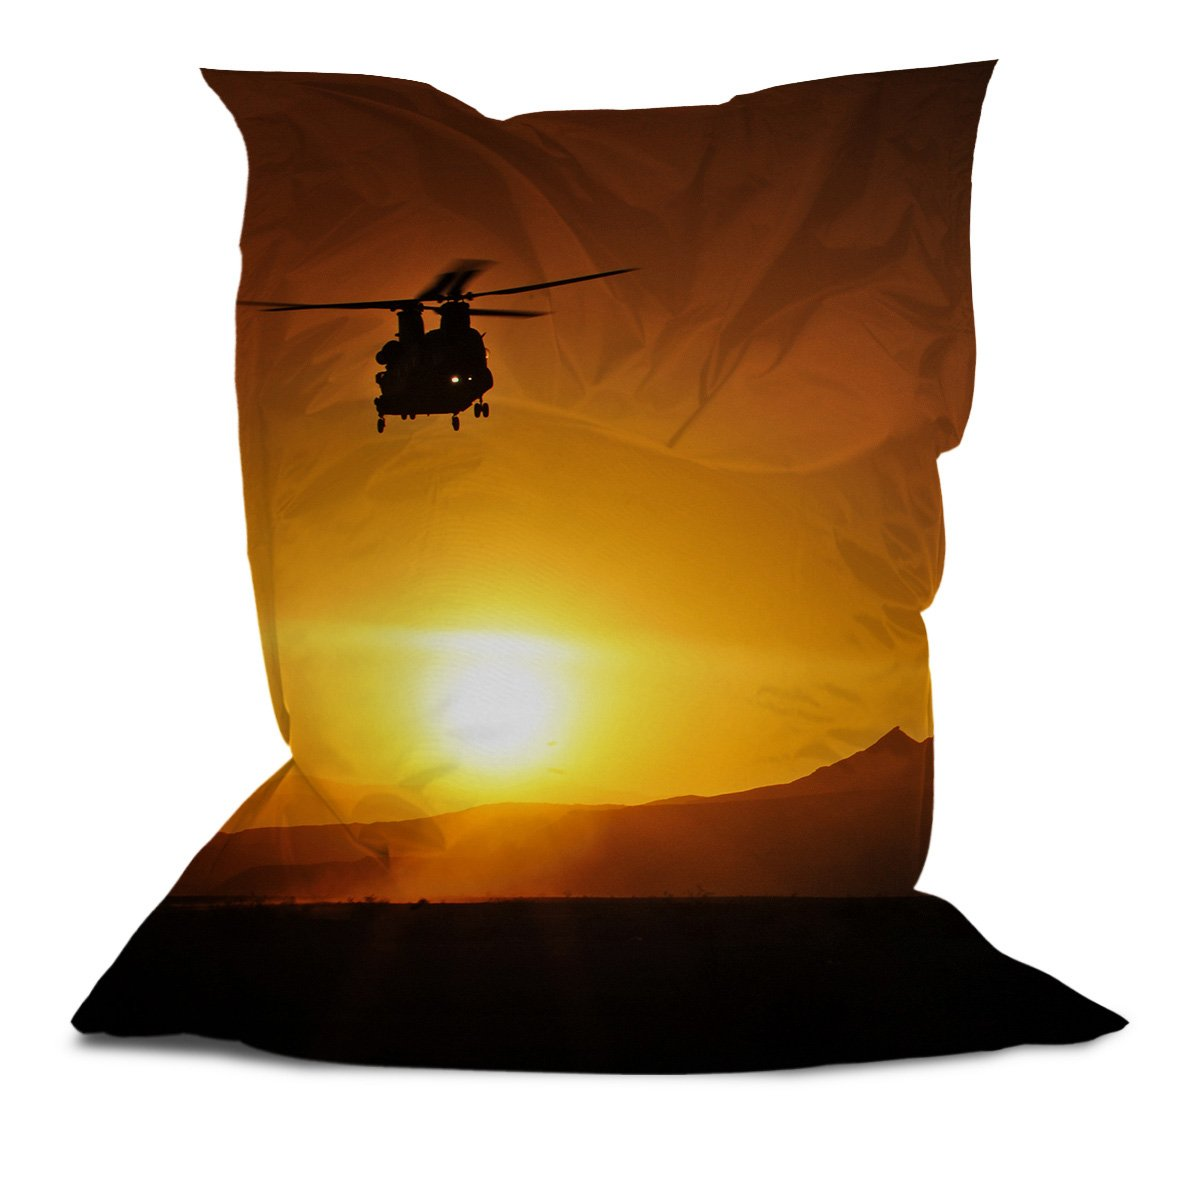 Branded Bean Bag with Printed Helicopter (5' x 4.4')